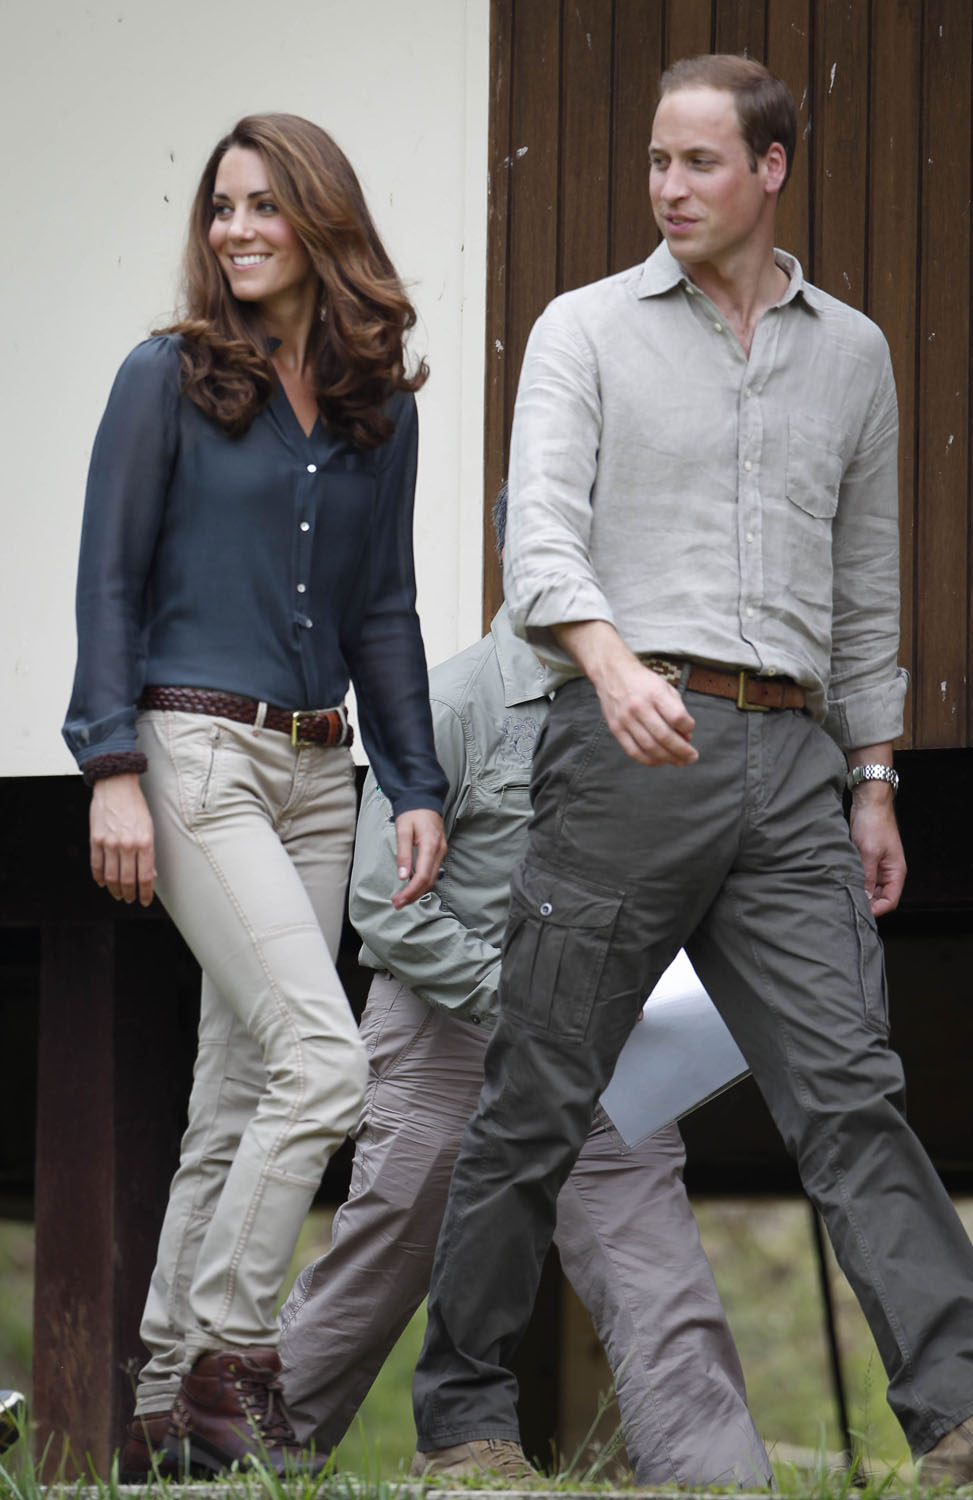 <strong>Rugged Beauty</strong> Britain's Prince William and his wife Catherine, the Duchess of Cambridge, arrive in Danum Valley Research Center in Danum Valley, some 70 kilometers west of Lahad Datu, on the island of Borneo on September 15, 2012.